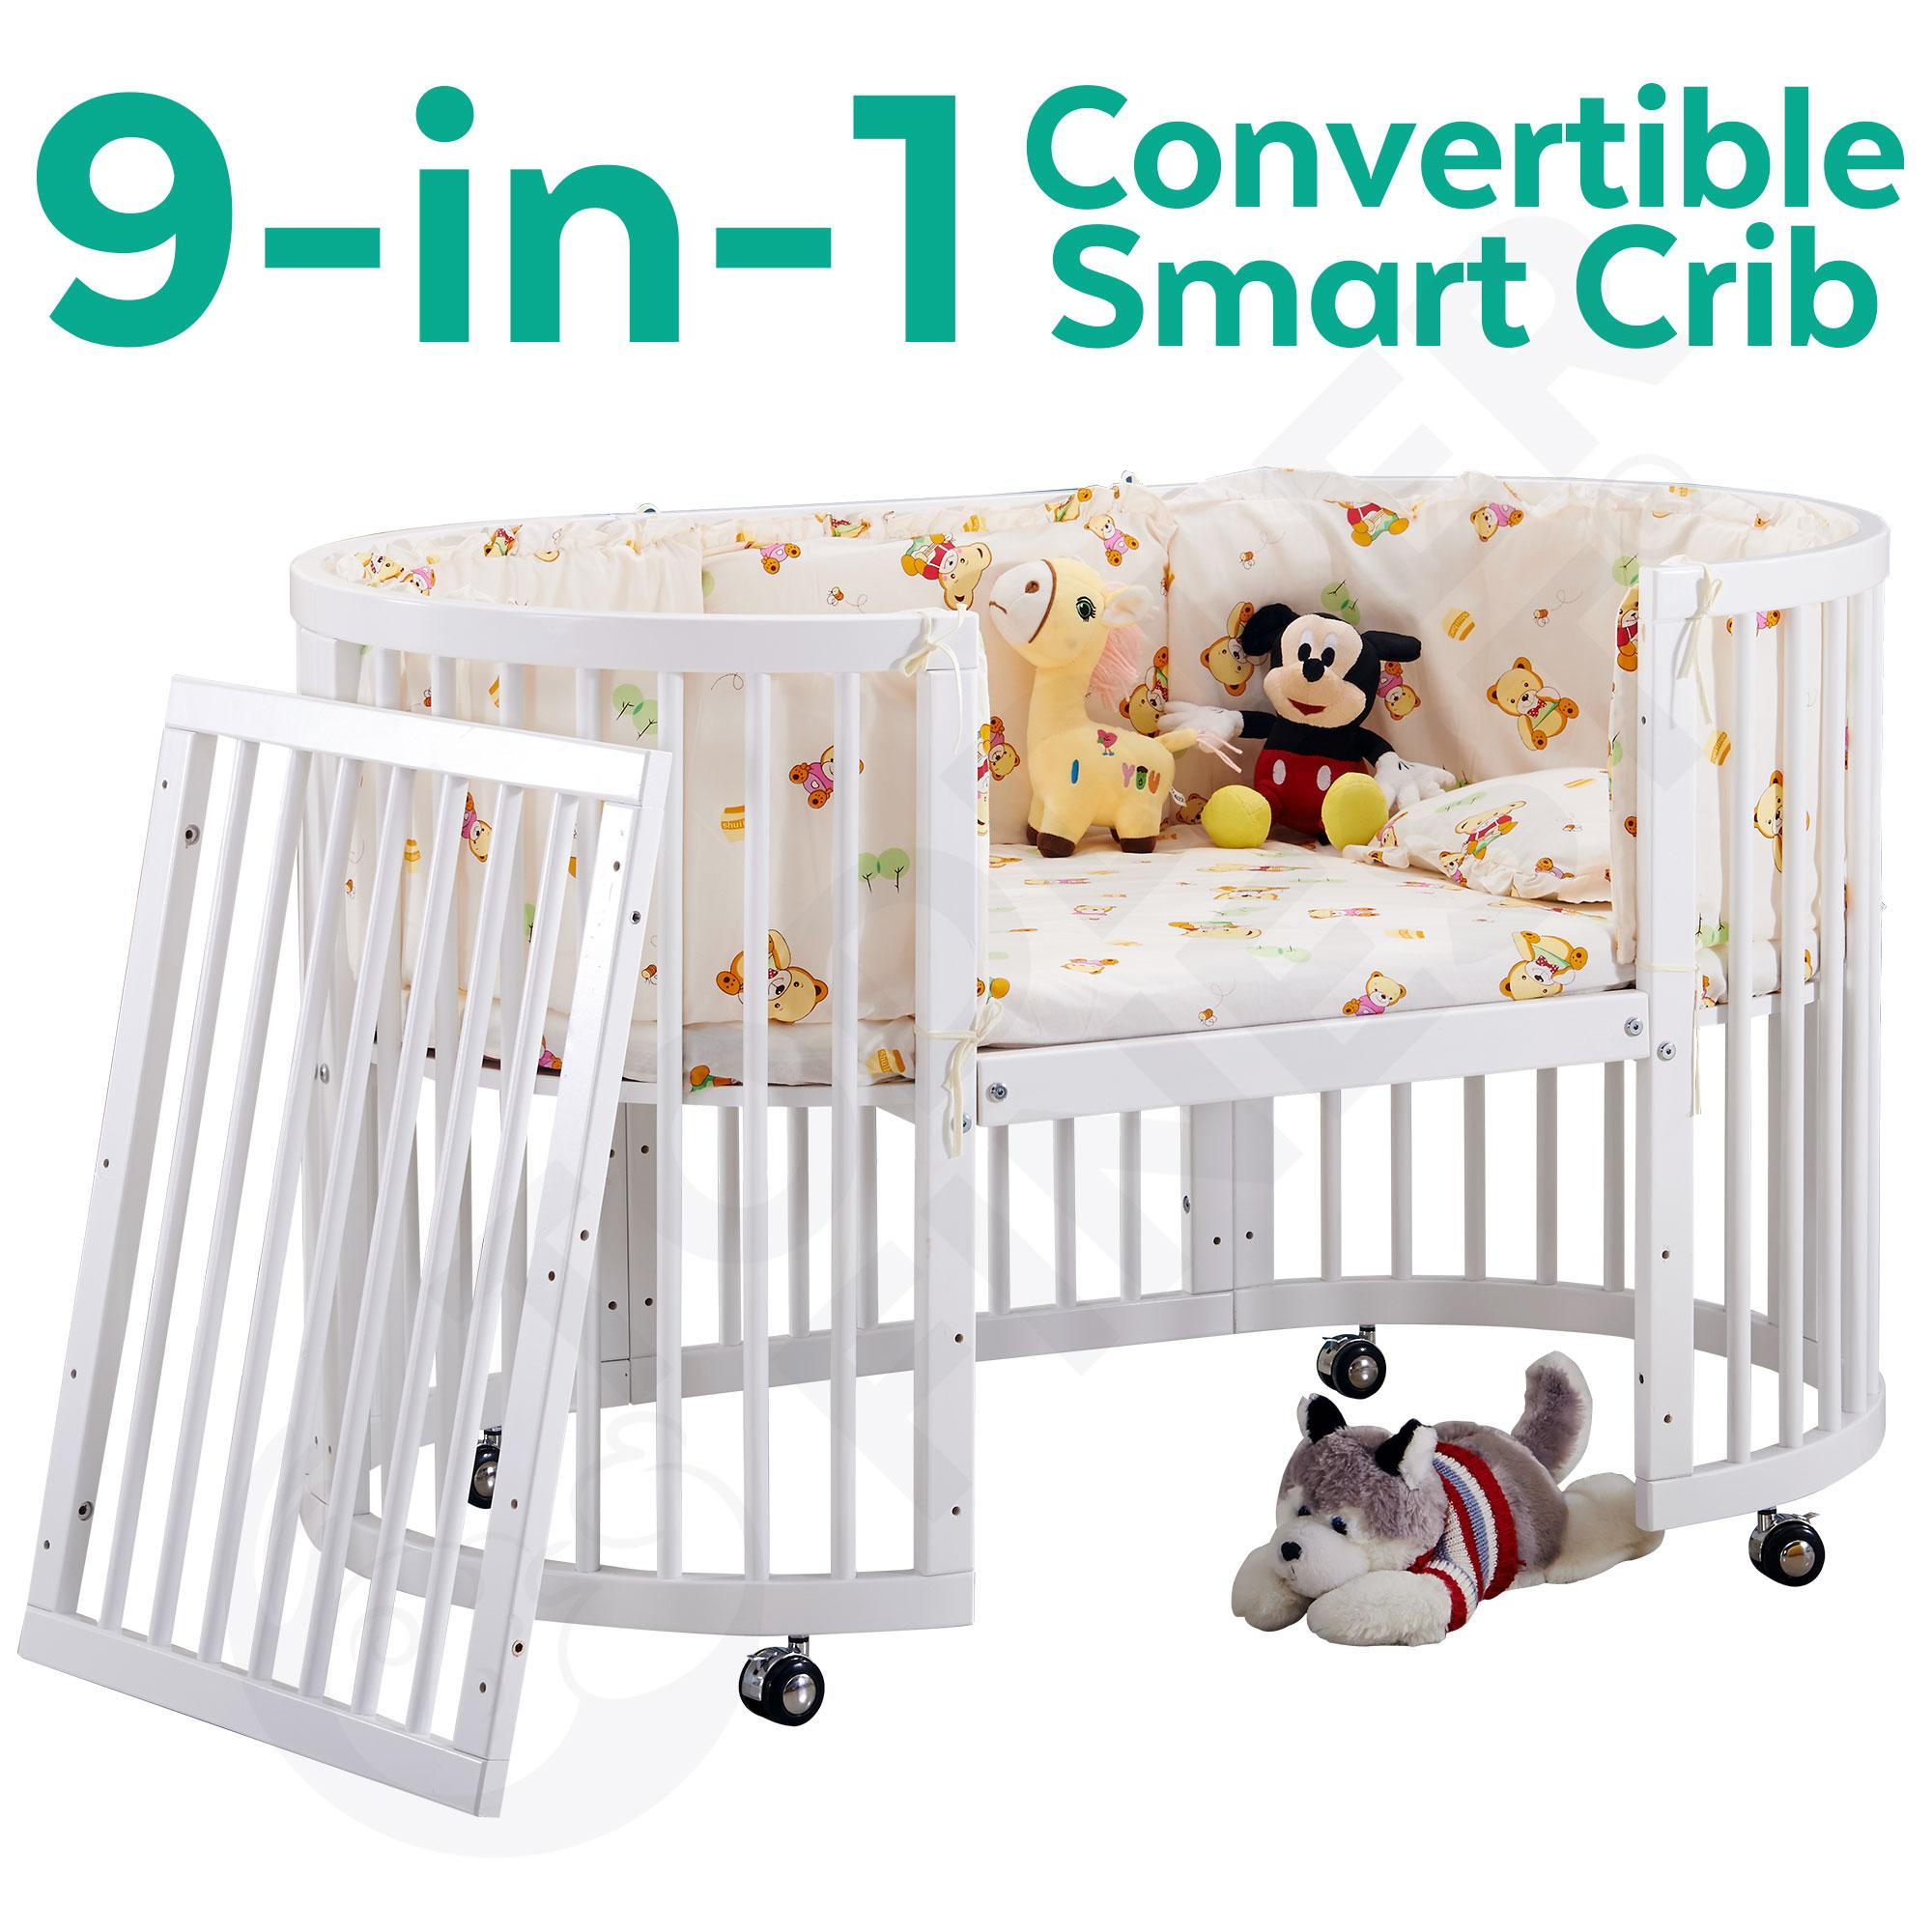 9-In-1 Convertible Baby Crib - As Infant Round Bed, Toddler Daybed, Side Bed, Full Oval Cot, Diaper Changer, Playard, Sofa, Study Desk Chair - 4 Position Adjustable Height Base - With Breathable Hypoallergenic Cot Mattress (age 0-10)(white)(toddlerfinest).